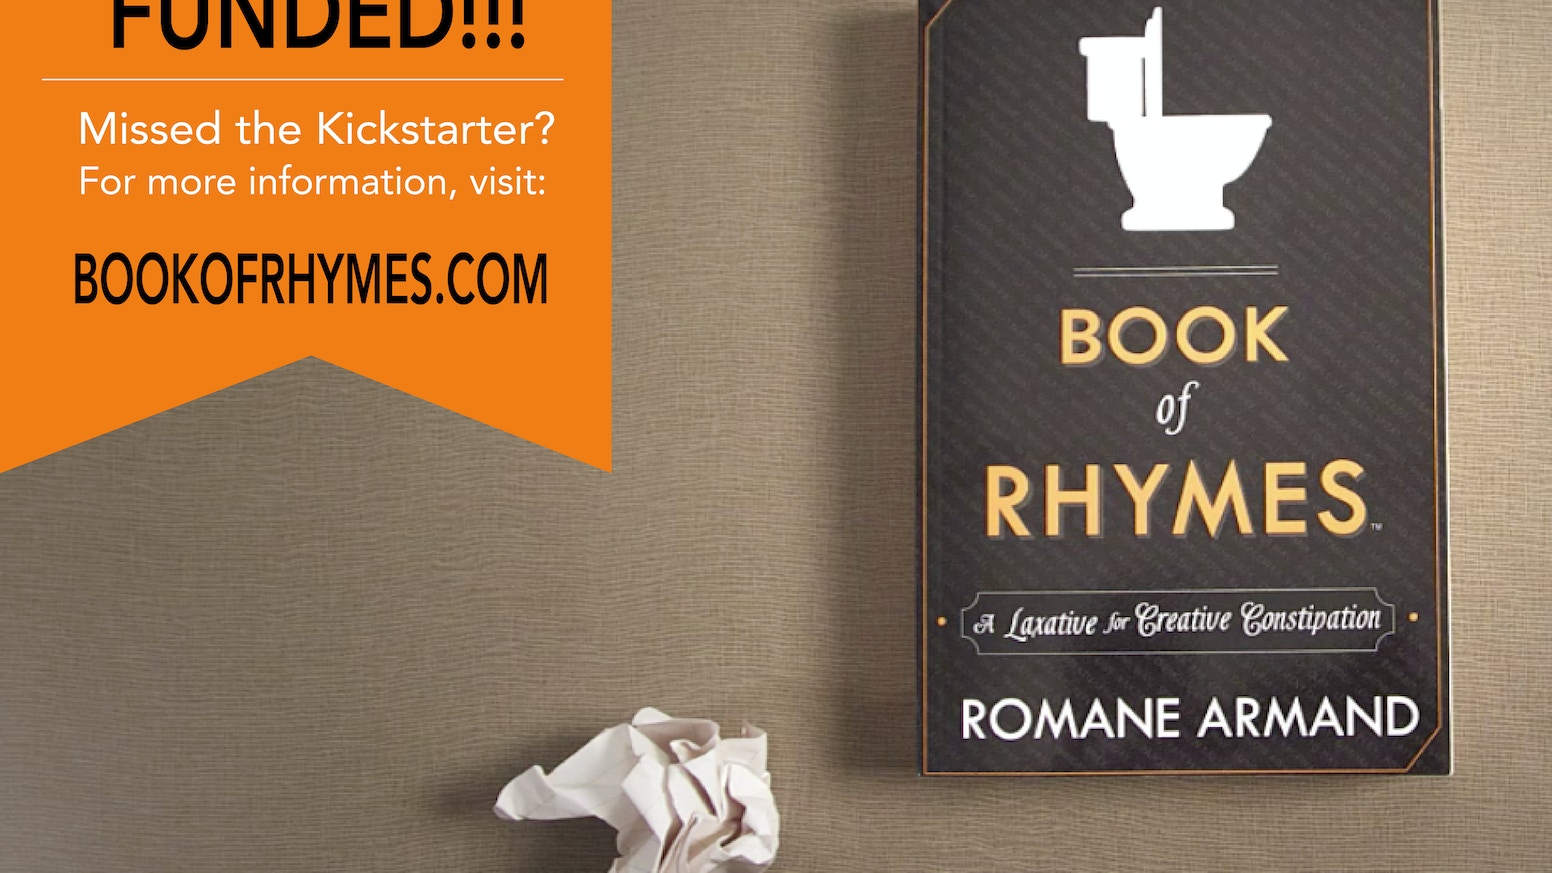 book of rhymes by romane armand kickstarter